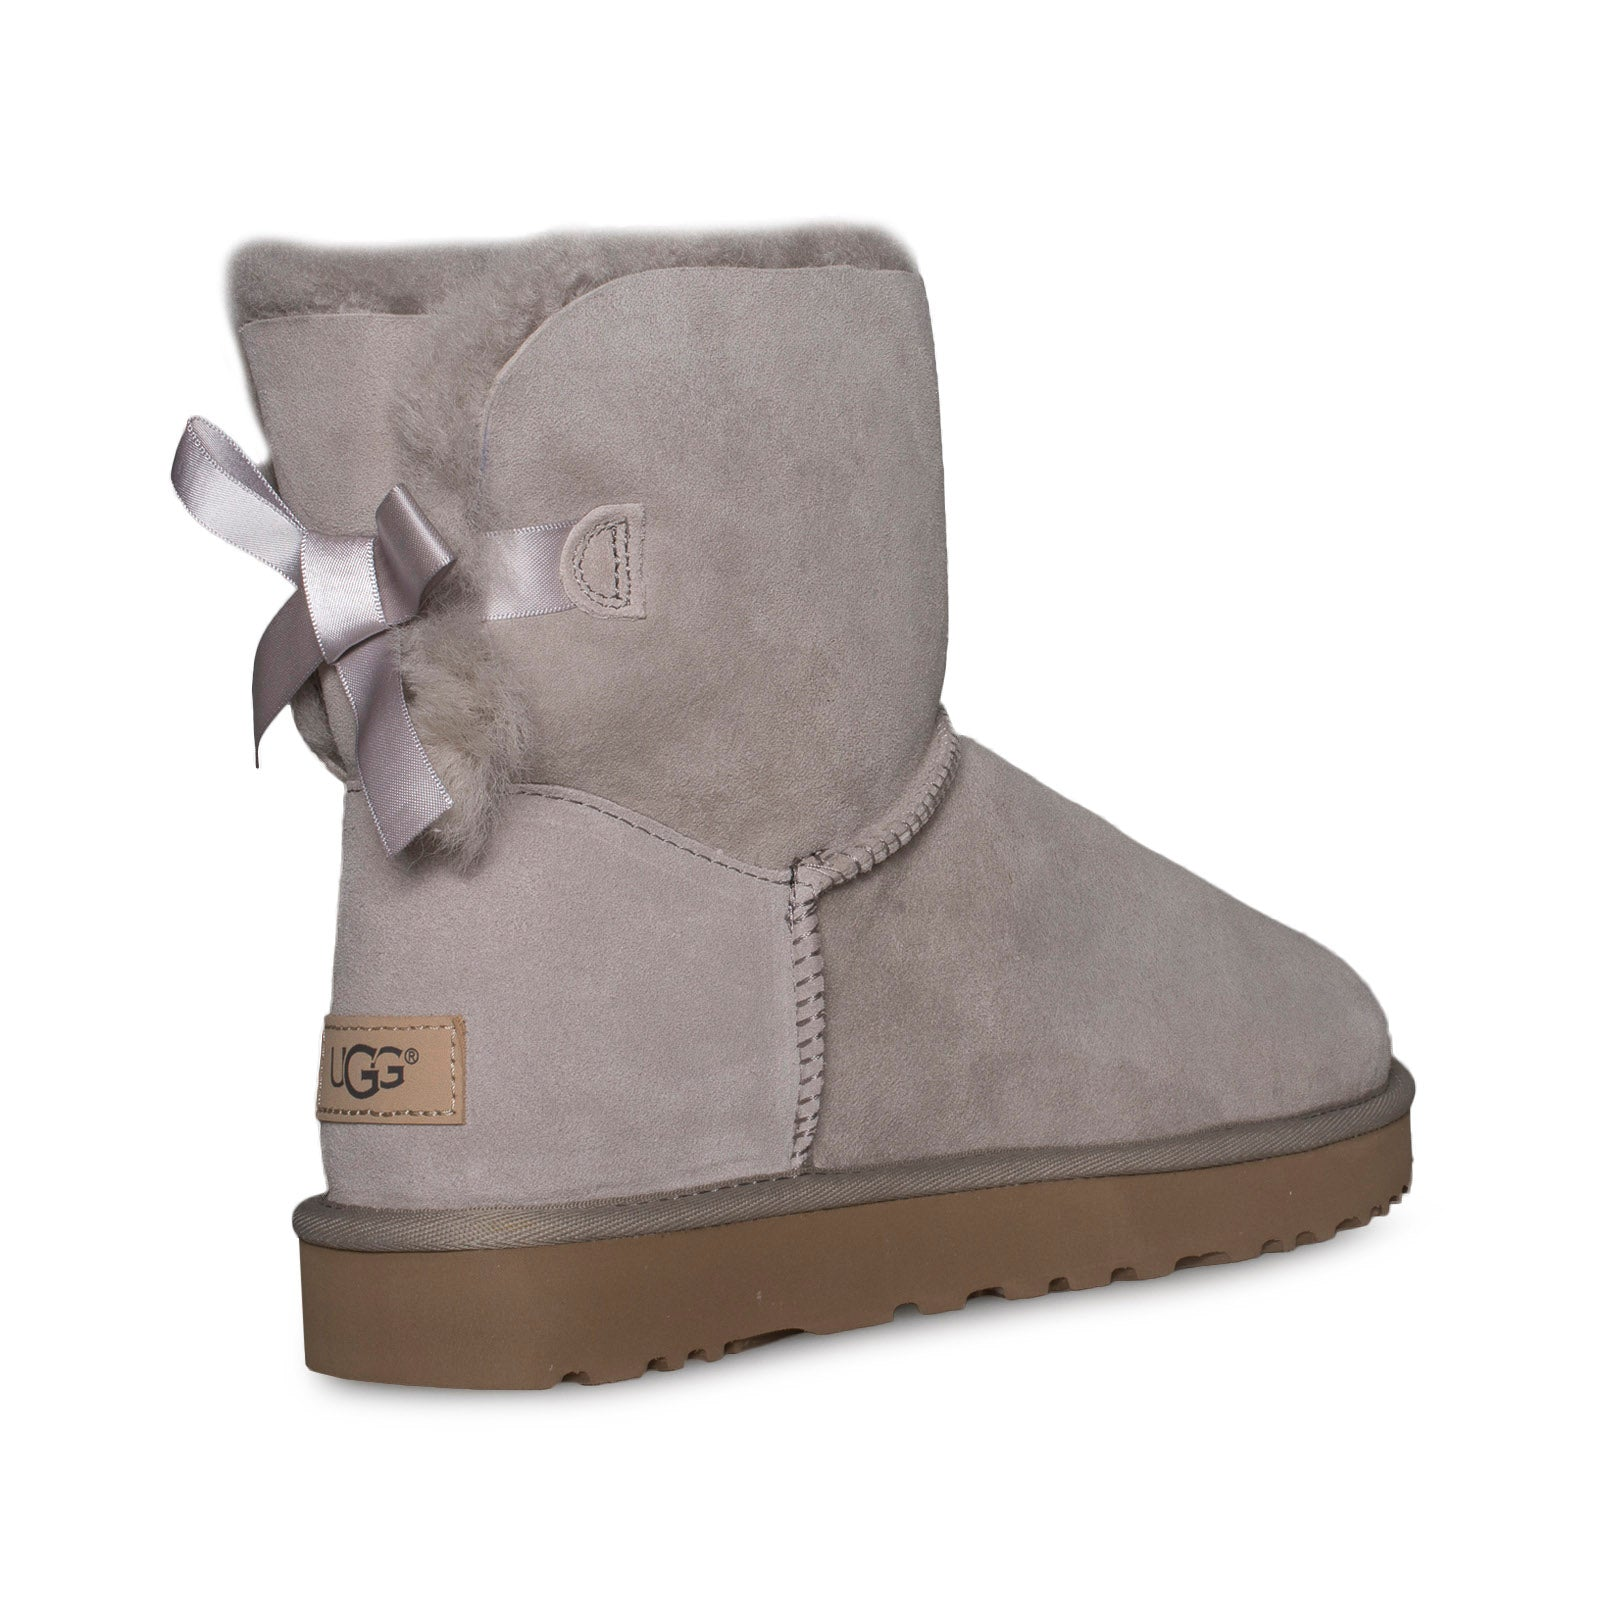 4c1a2b3726b UGG Mini Bailey Bow II Oyster Boots - Women's